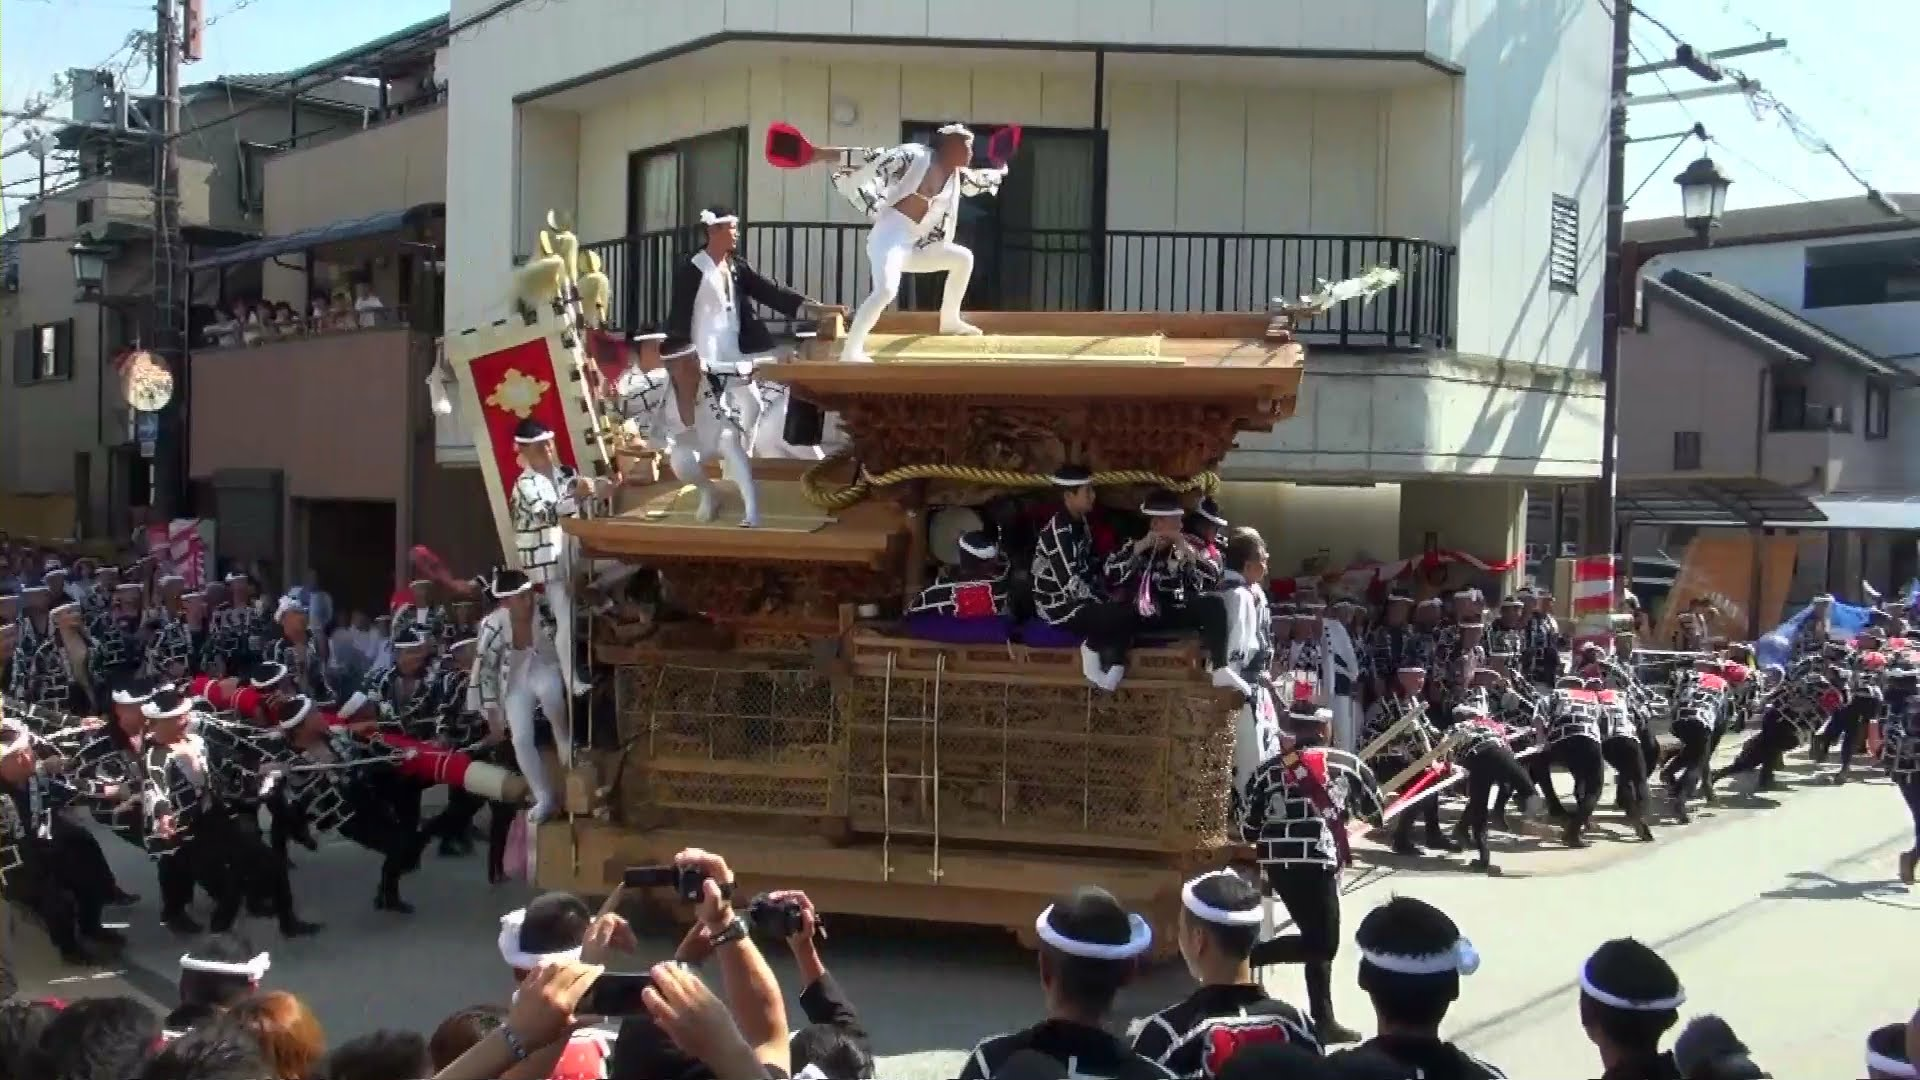 The Danjiri Festival in Kishiwada City is held in September